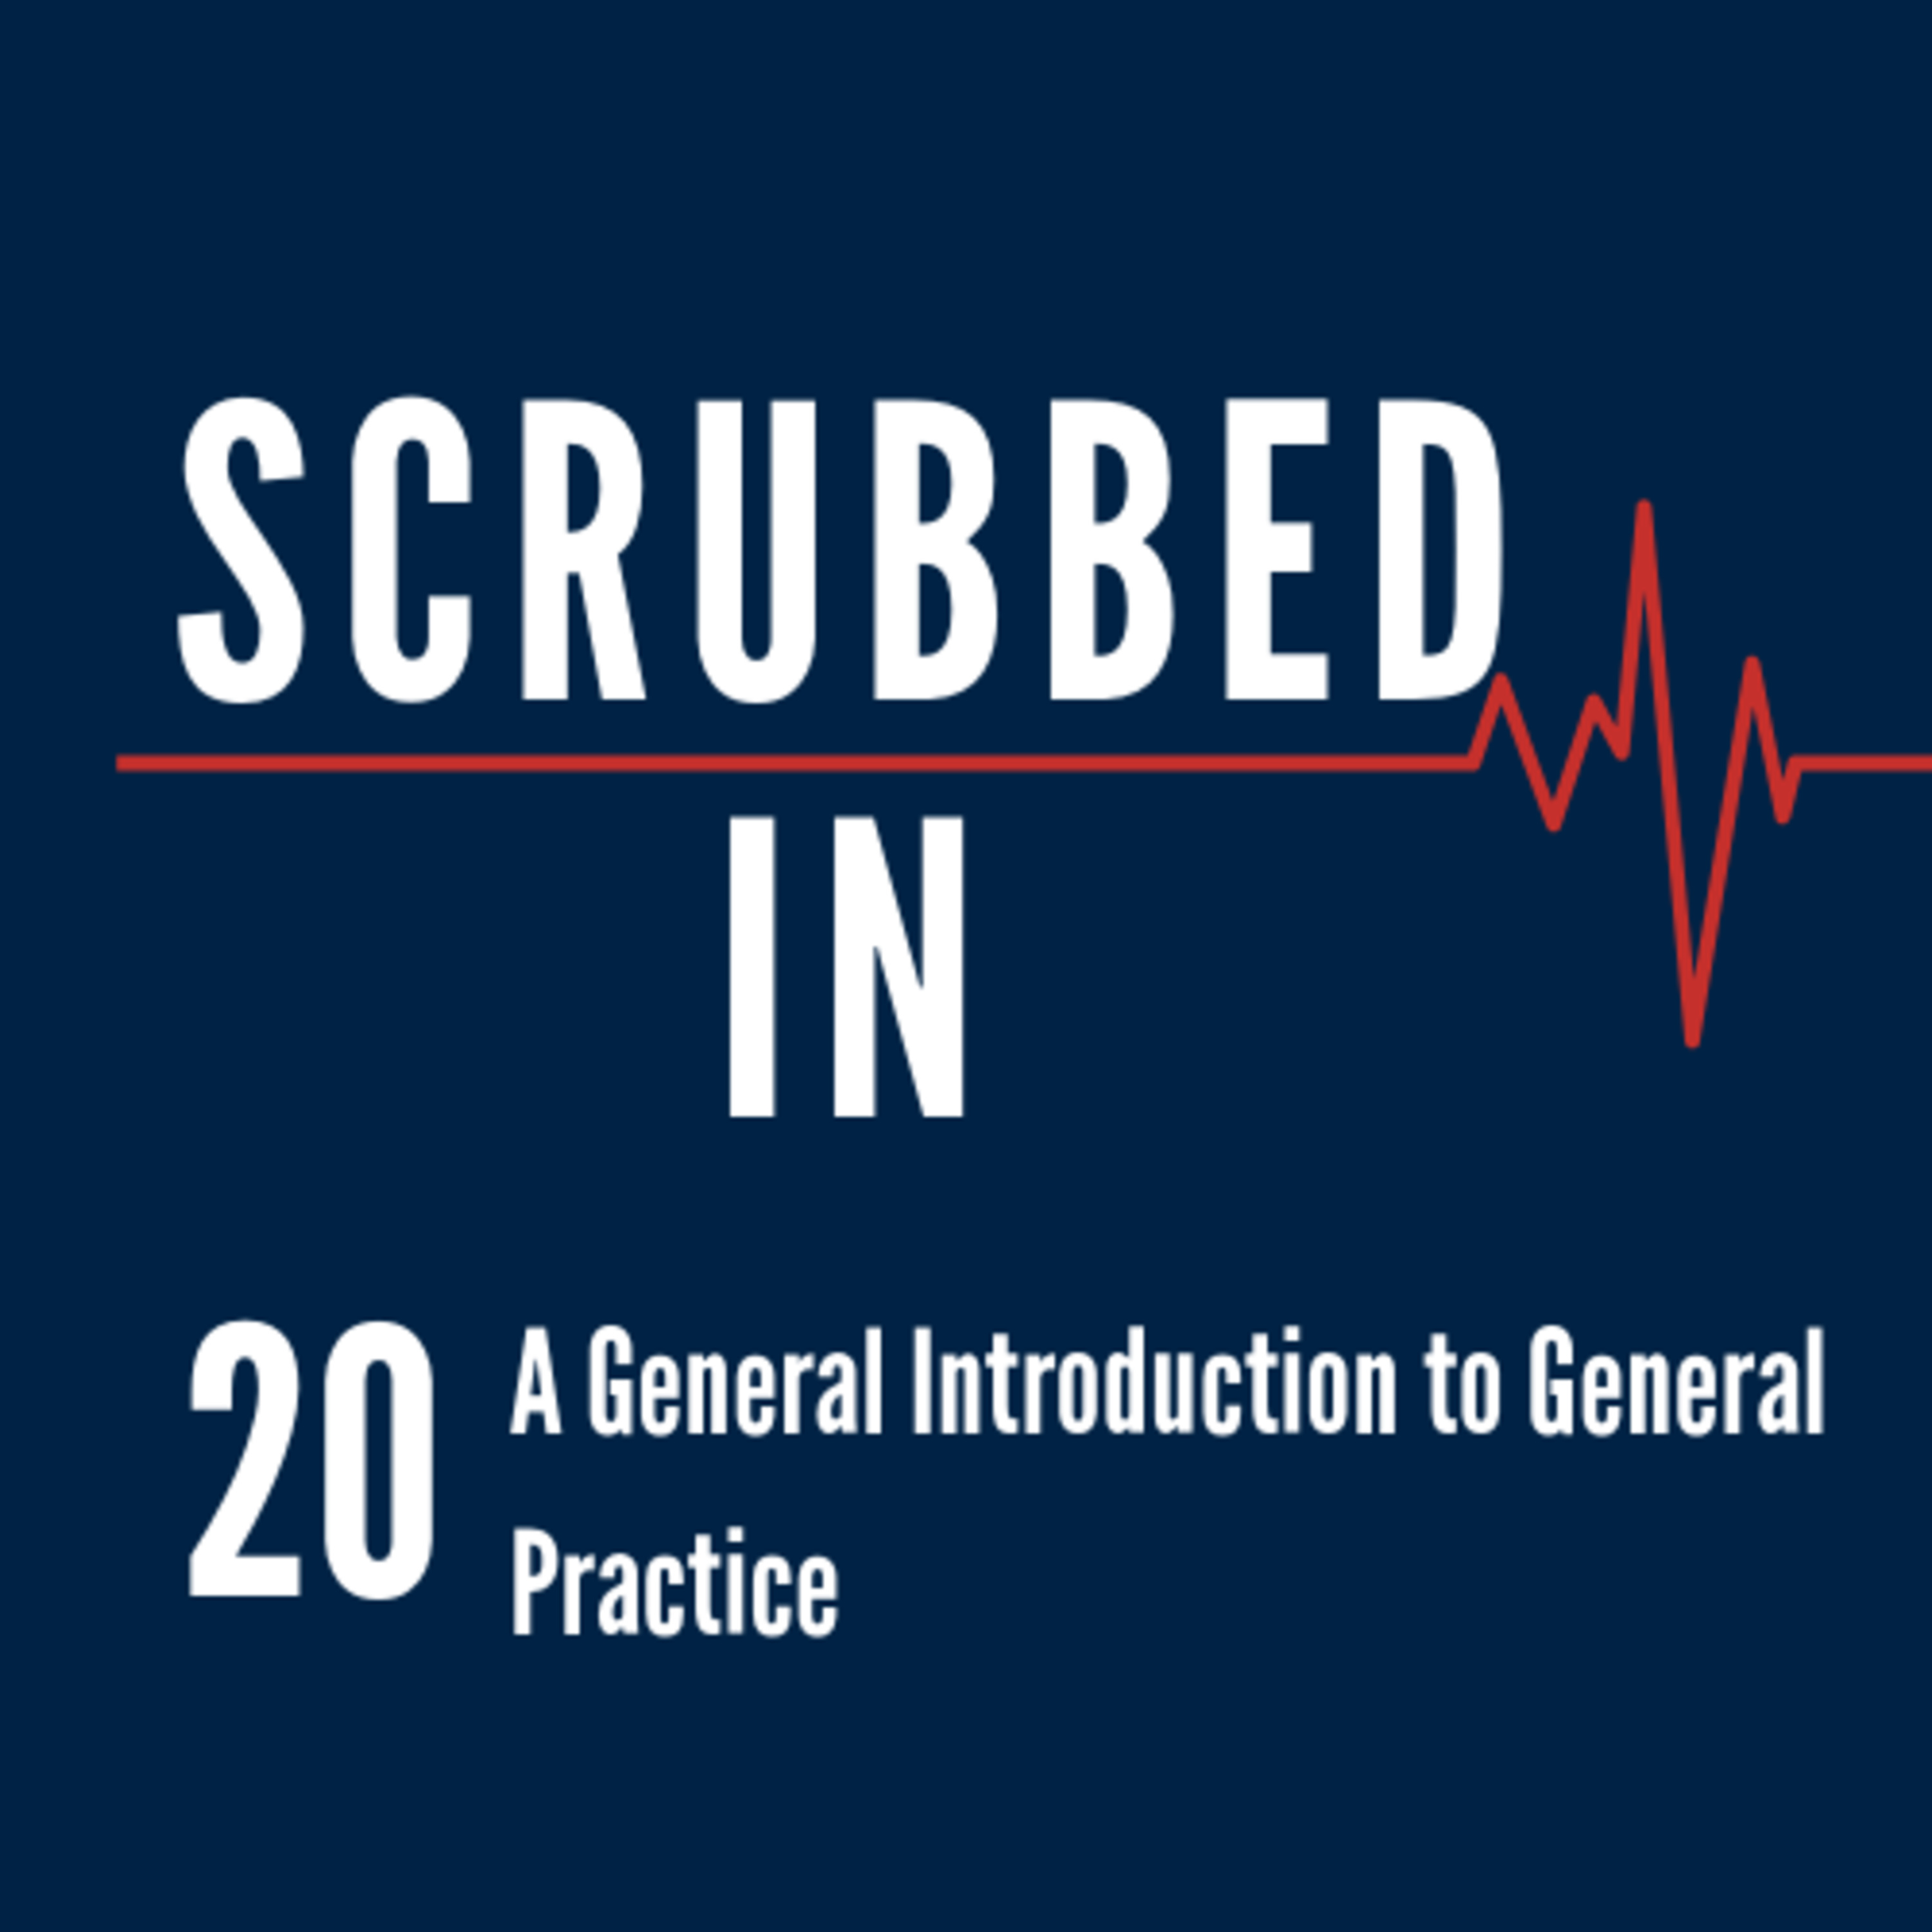 Scrubbed In - A General Introduction to General Practice